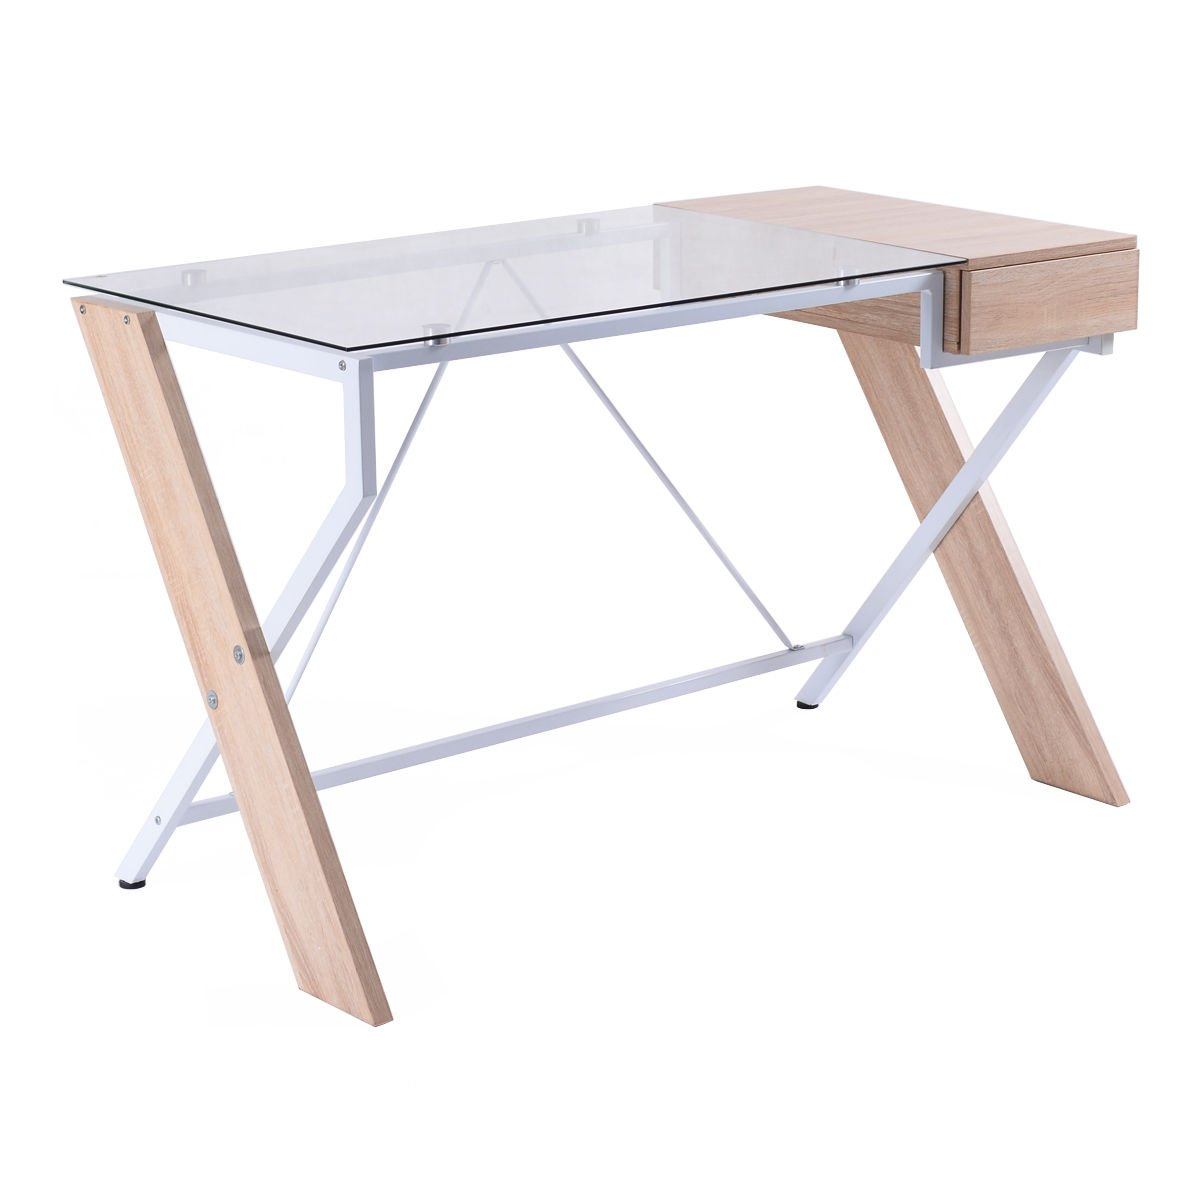 Amazoncom TANGKULA Laptop Computer Desk Wood wGlass Tabletop for